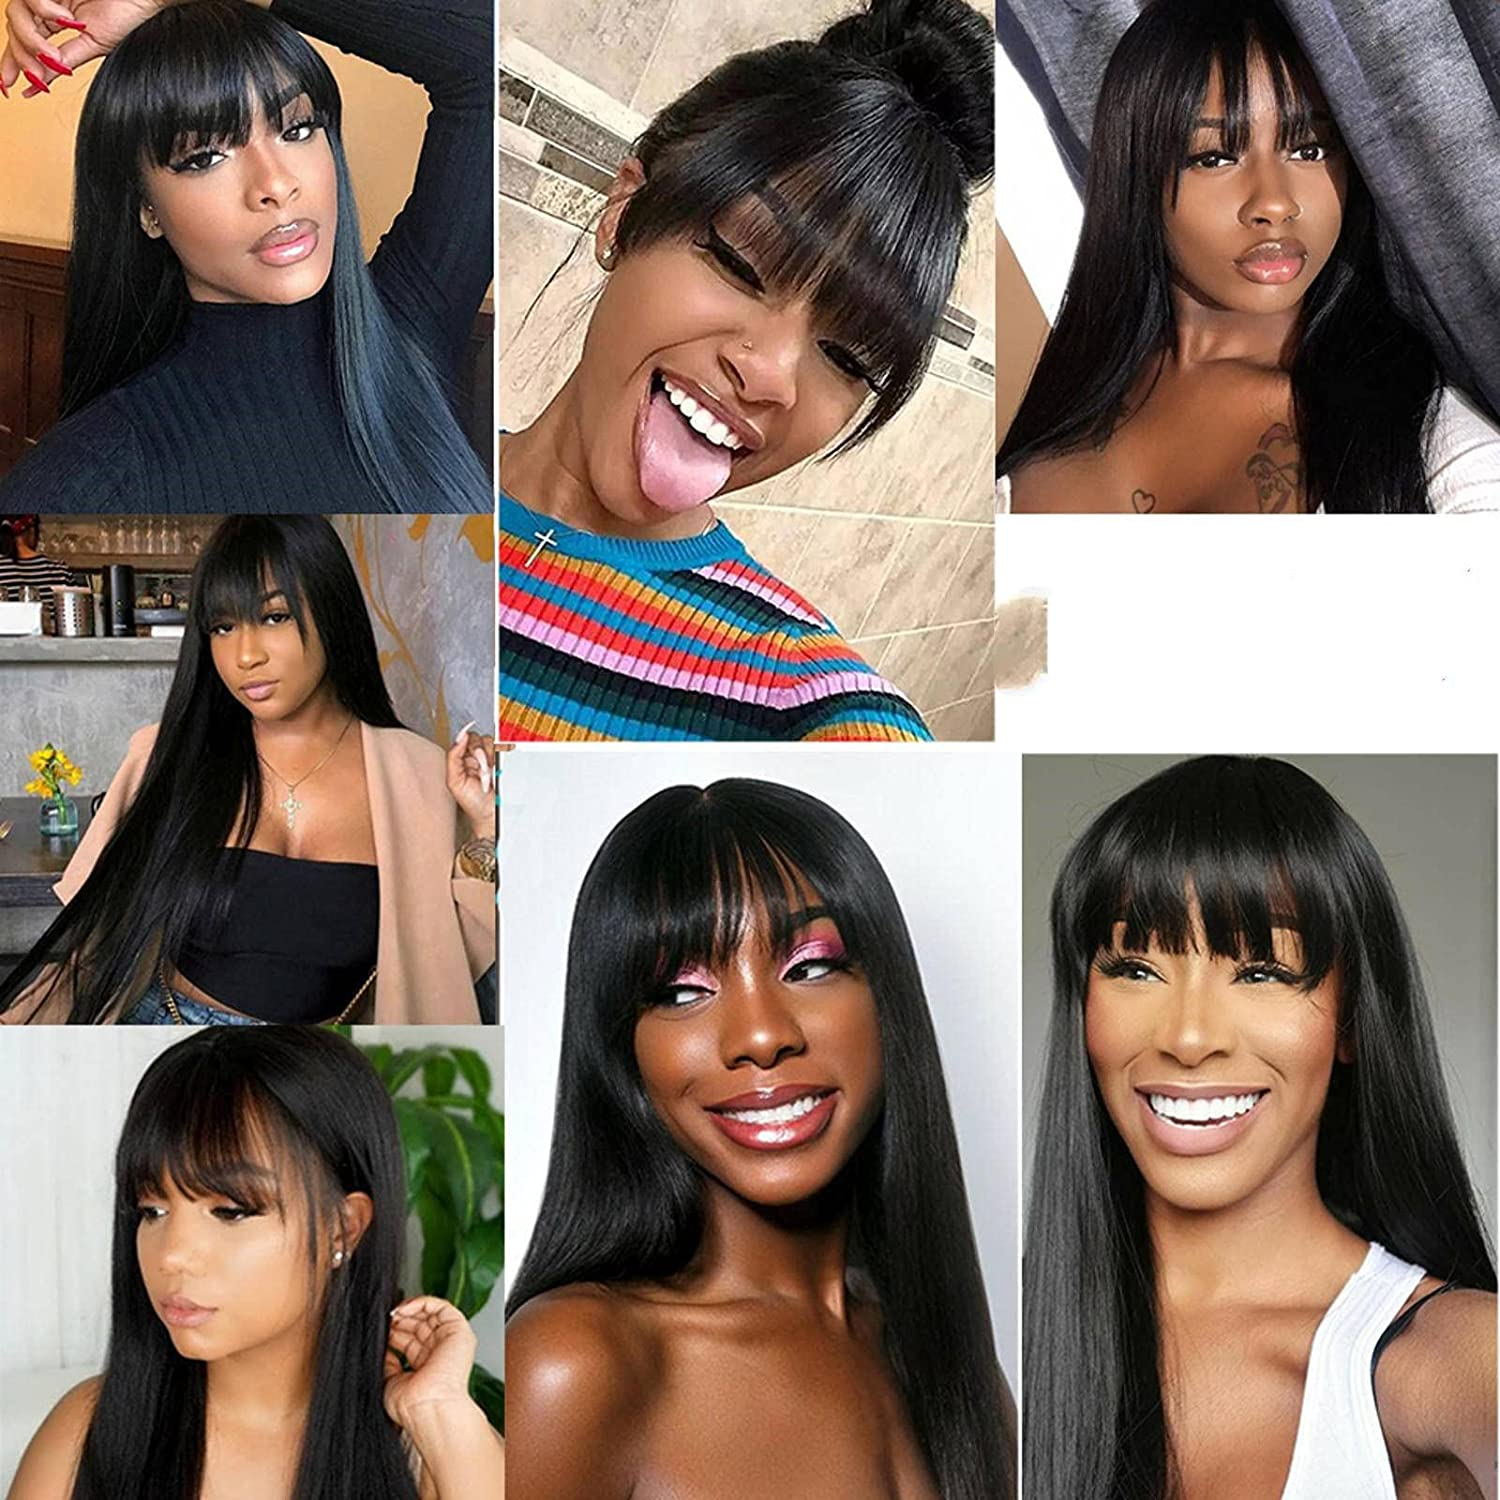 N\C Brazilian Los Angeles Mall Straight Human Hair Wigs Full 55% OFF Bangs with Mach Remy